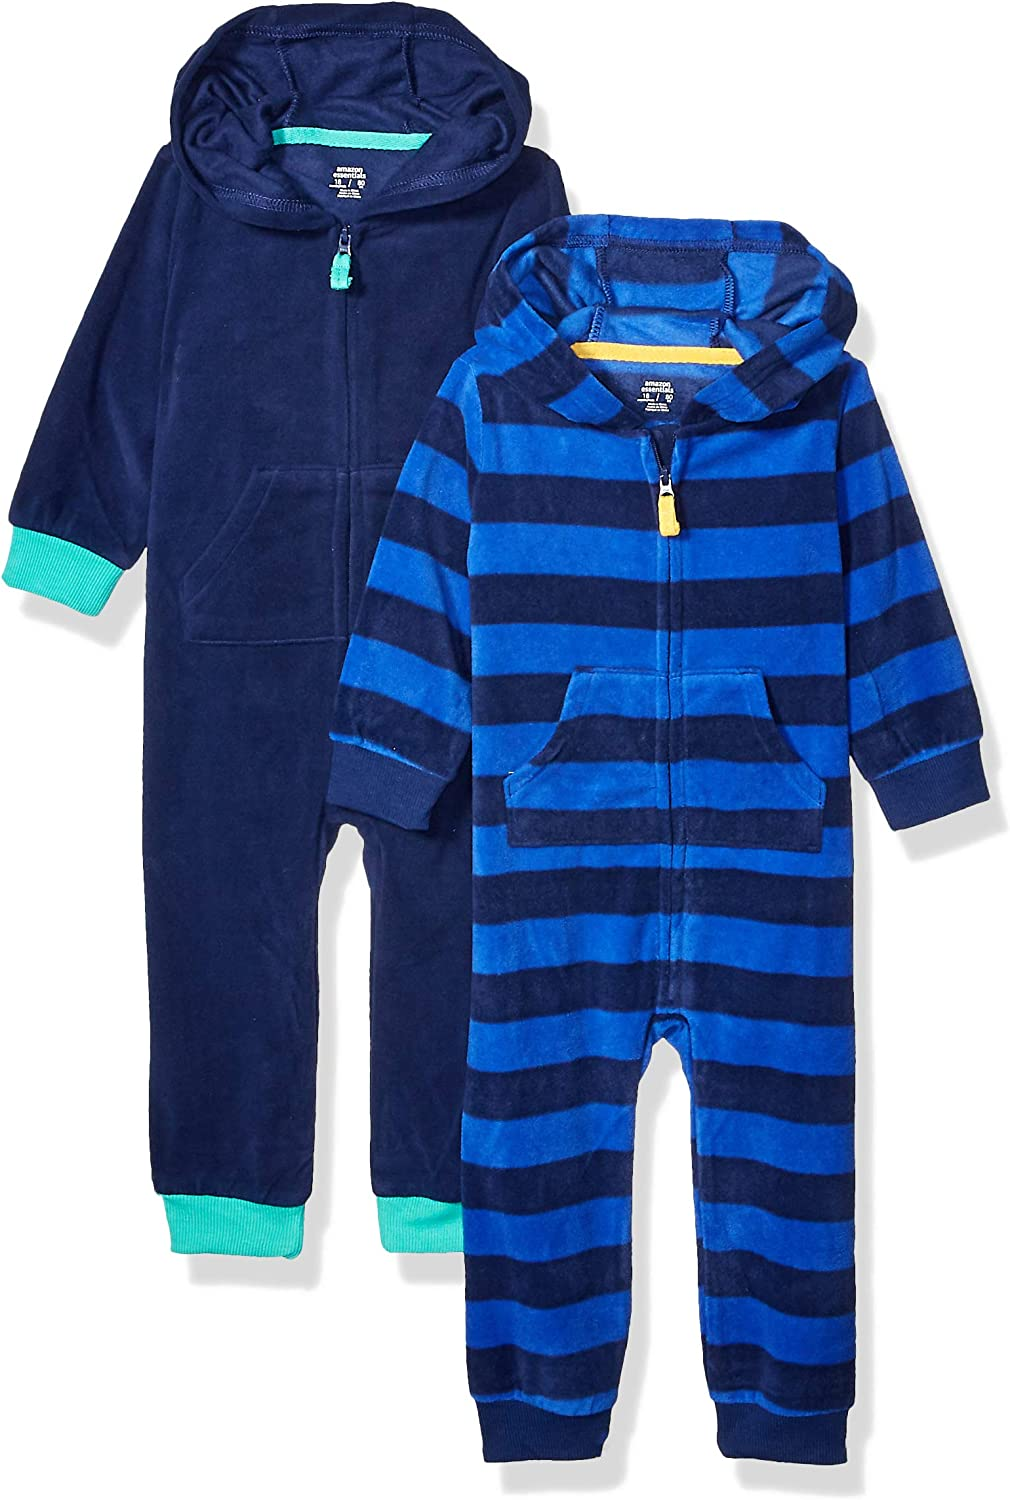 Essentials Boys Toddler 2-Pack Microfleece Hooded Coverall